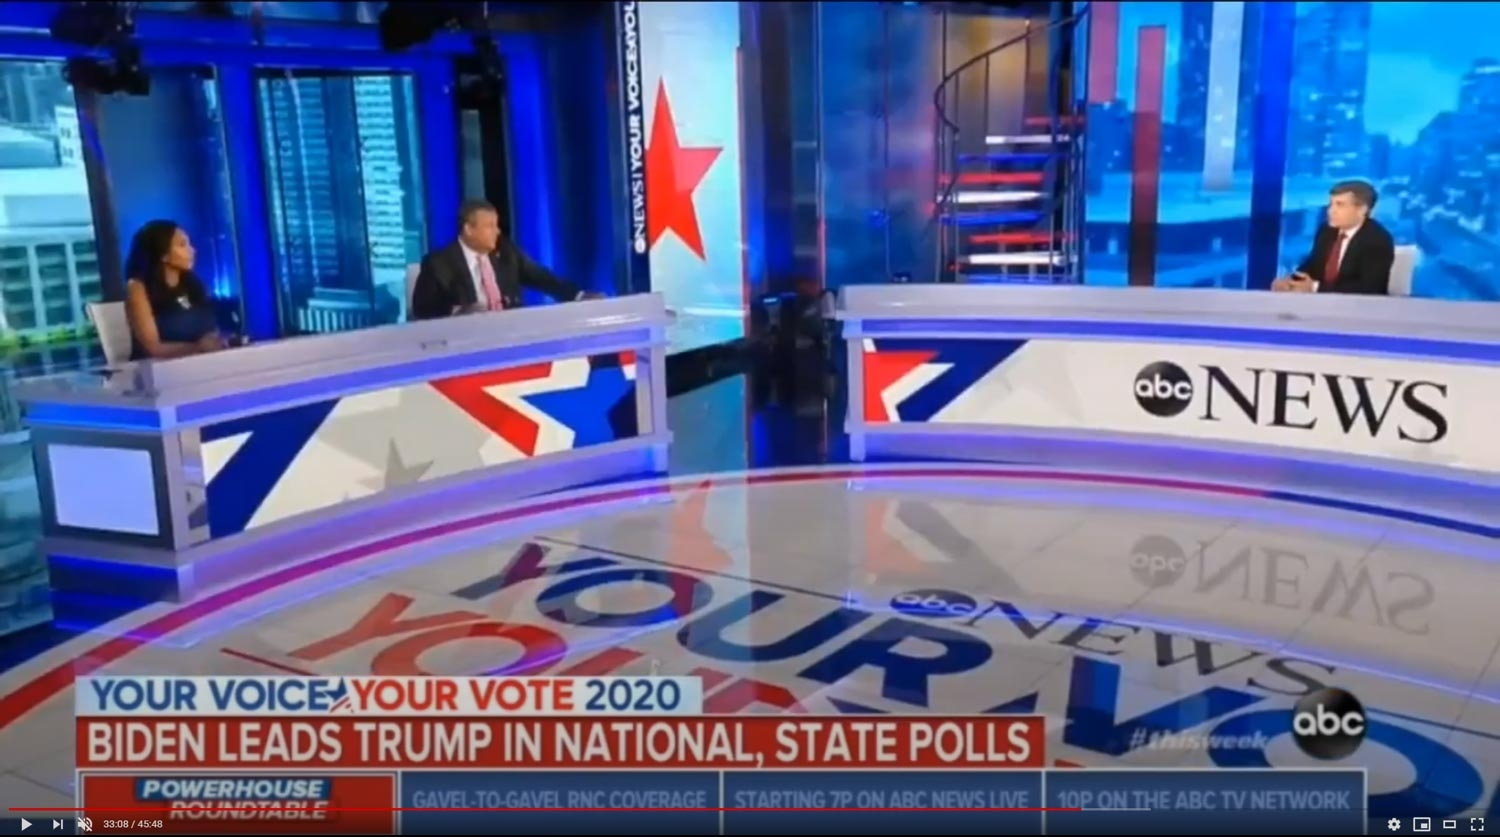 Set screen design for This Week with George Stephanopoulos, August 23, 2020